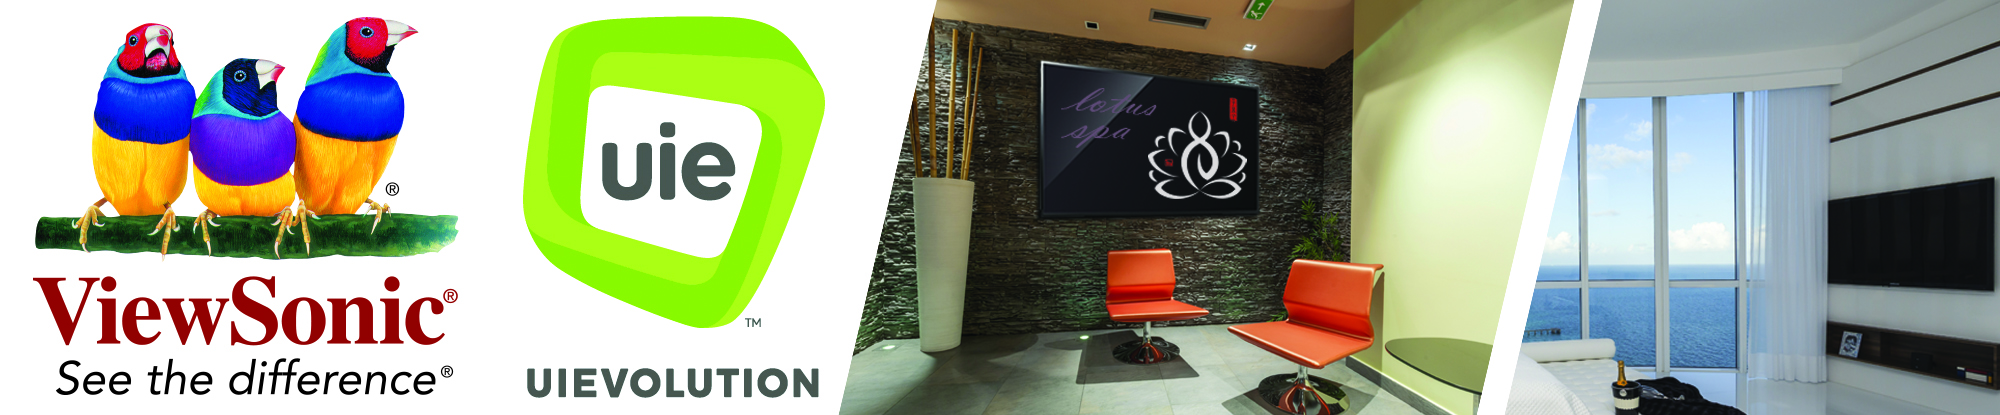 UIEvolution and ViewSonic Partner to Create Smart Module Displays that Support Advanced Digital Experiences